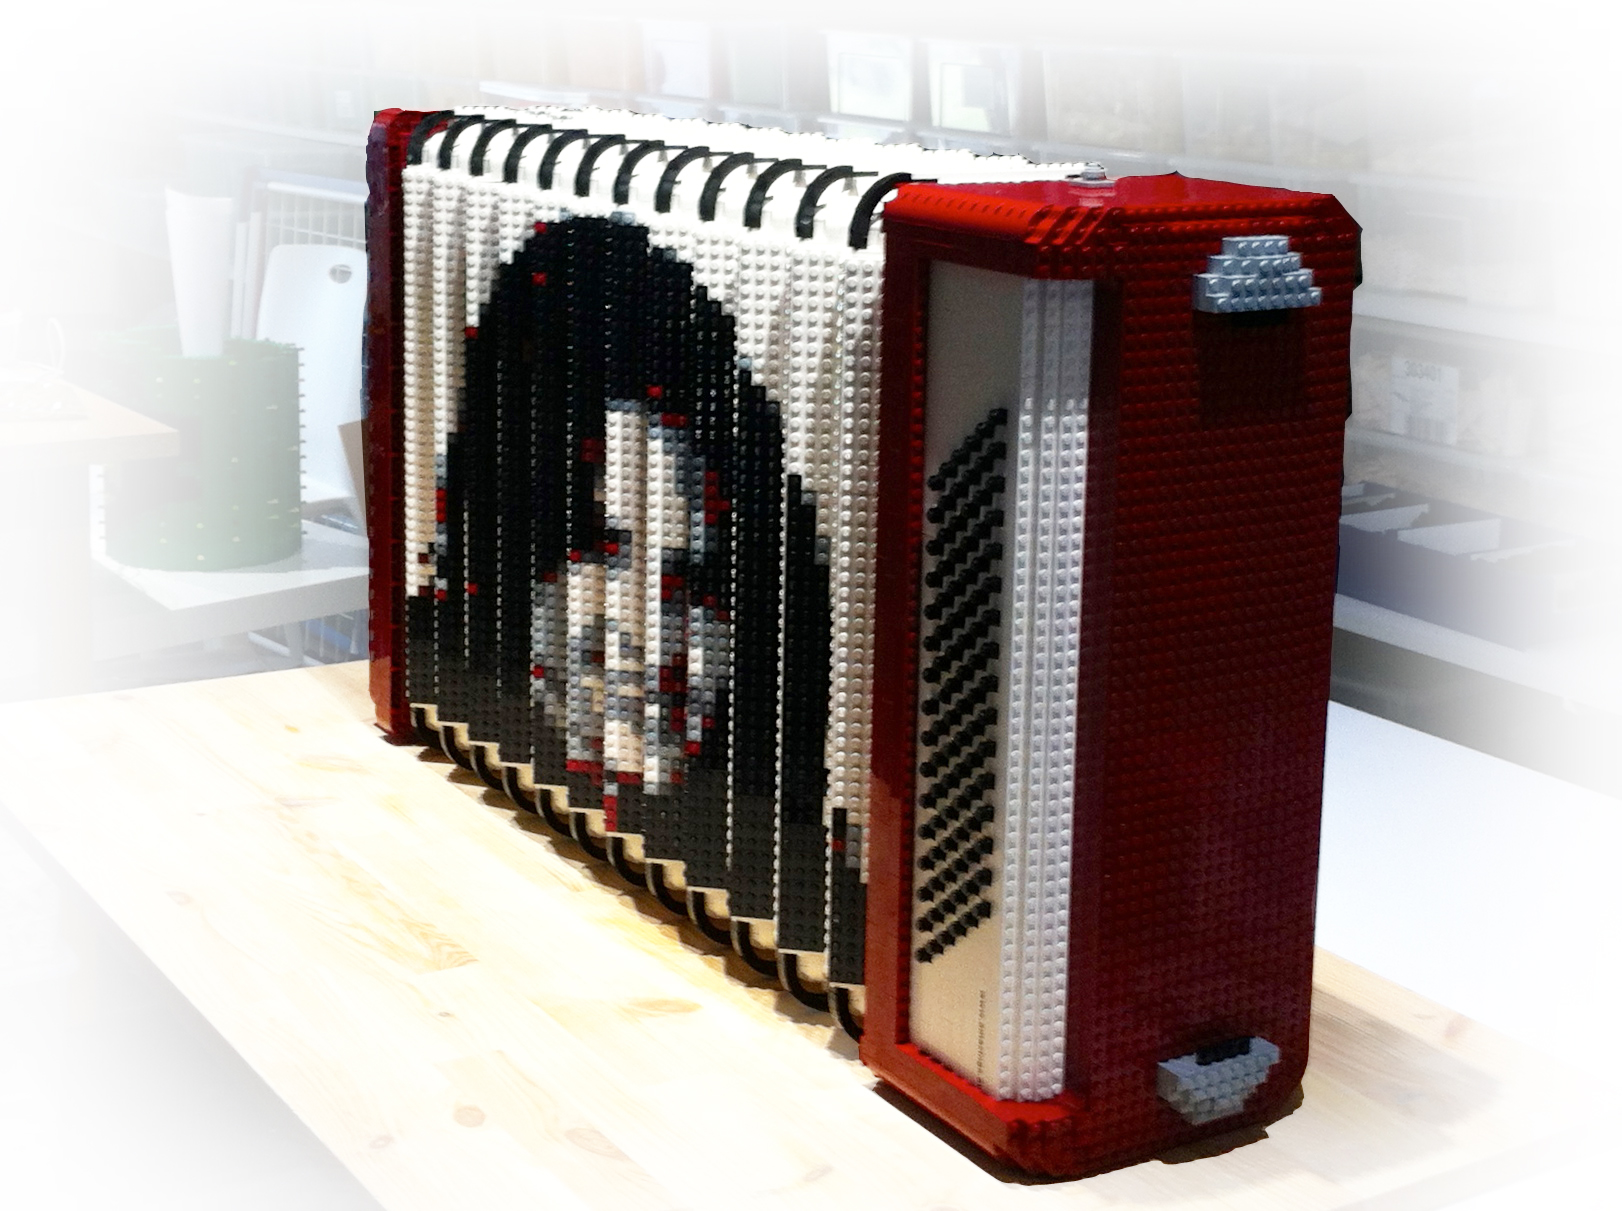 AmazingsLEGOCallaertsDenoyelleAccordion2